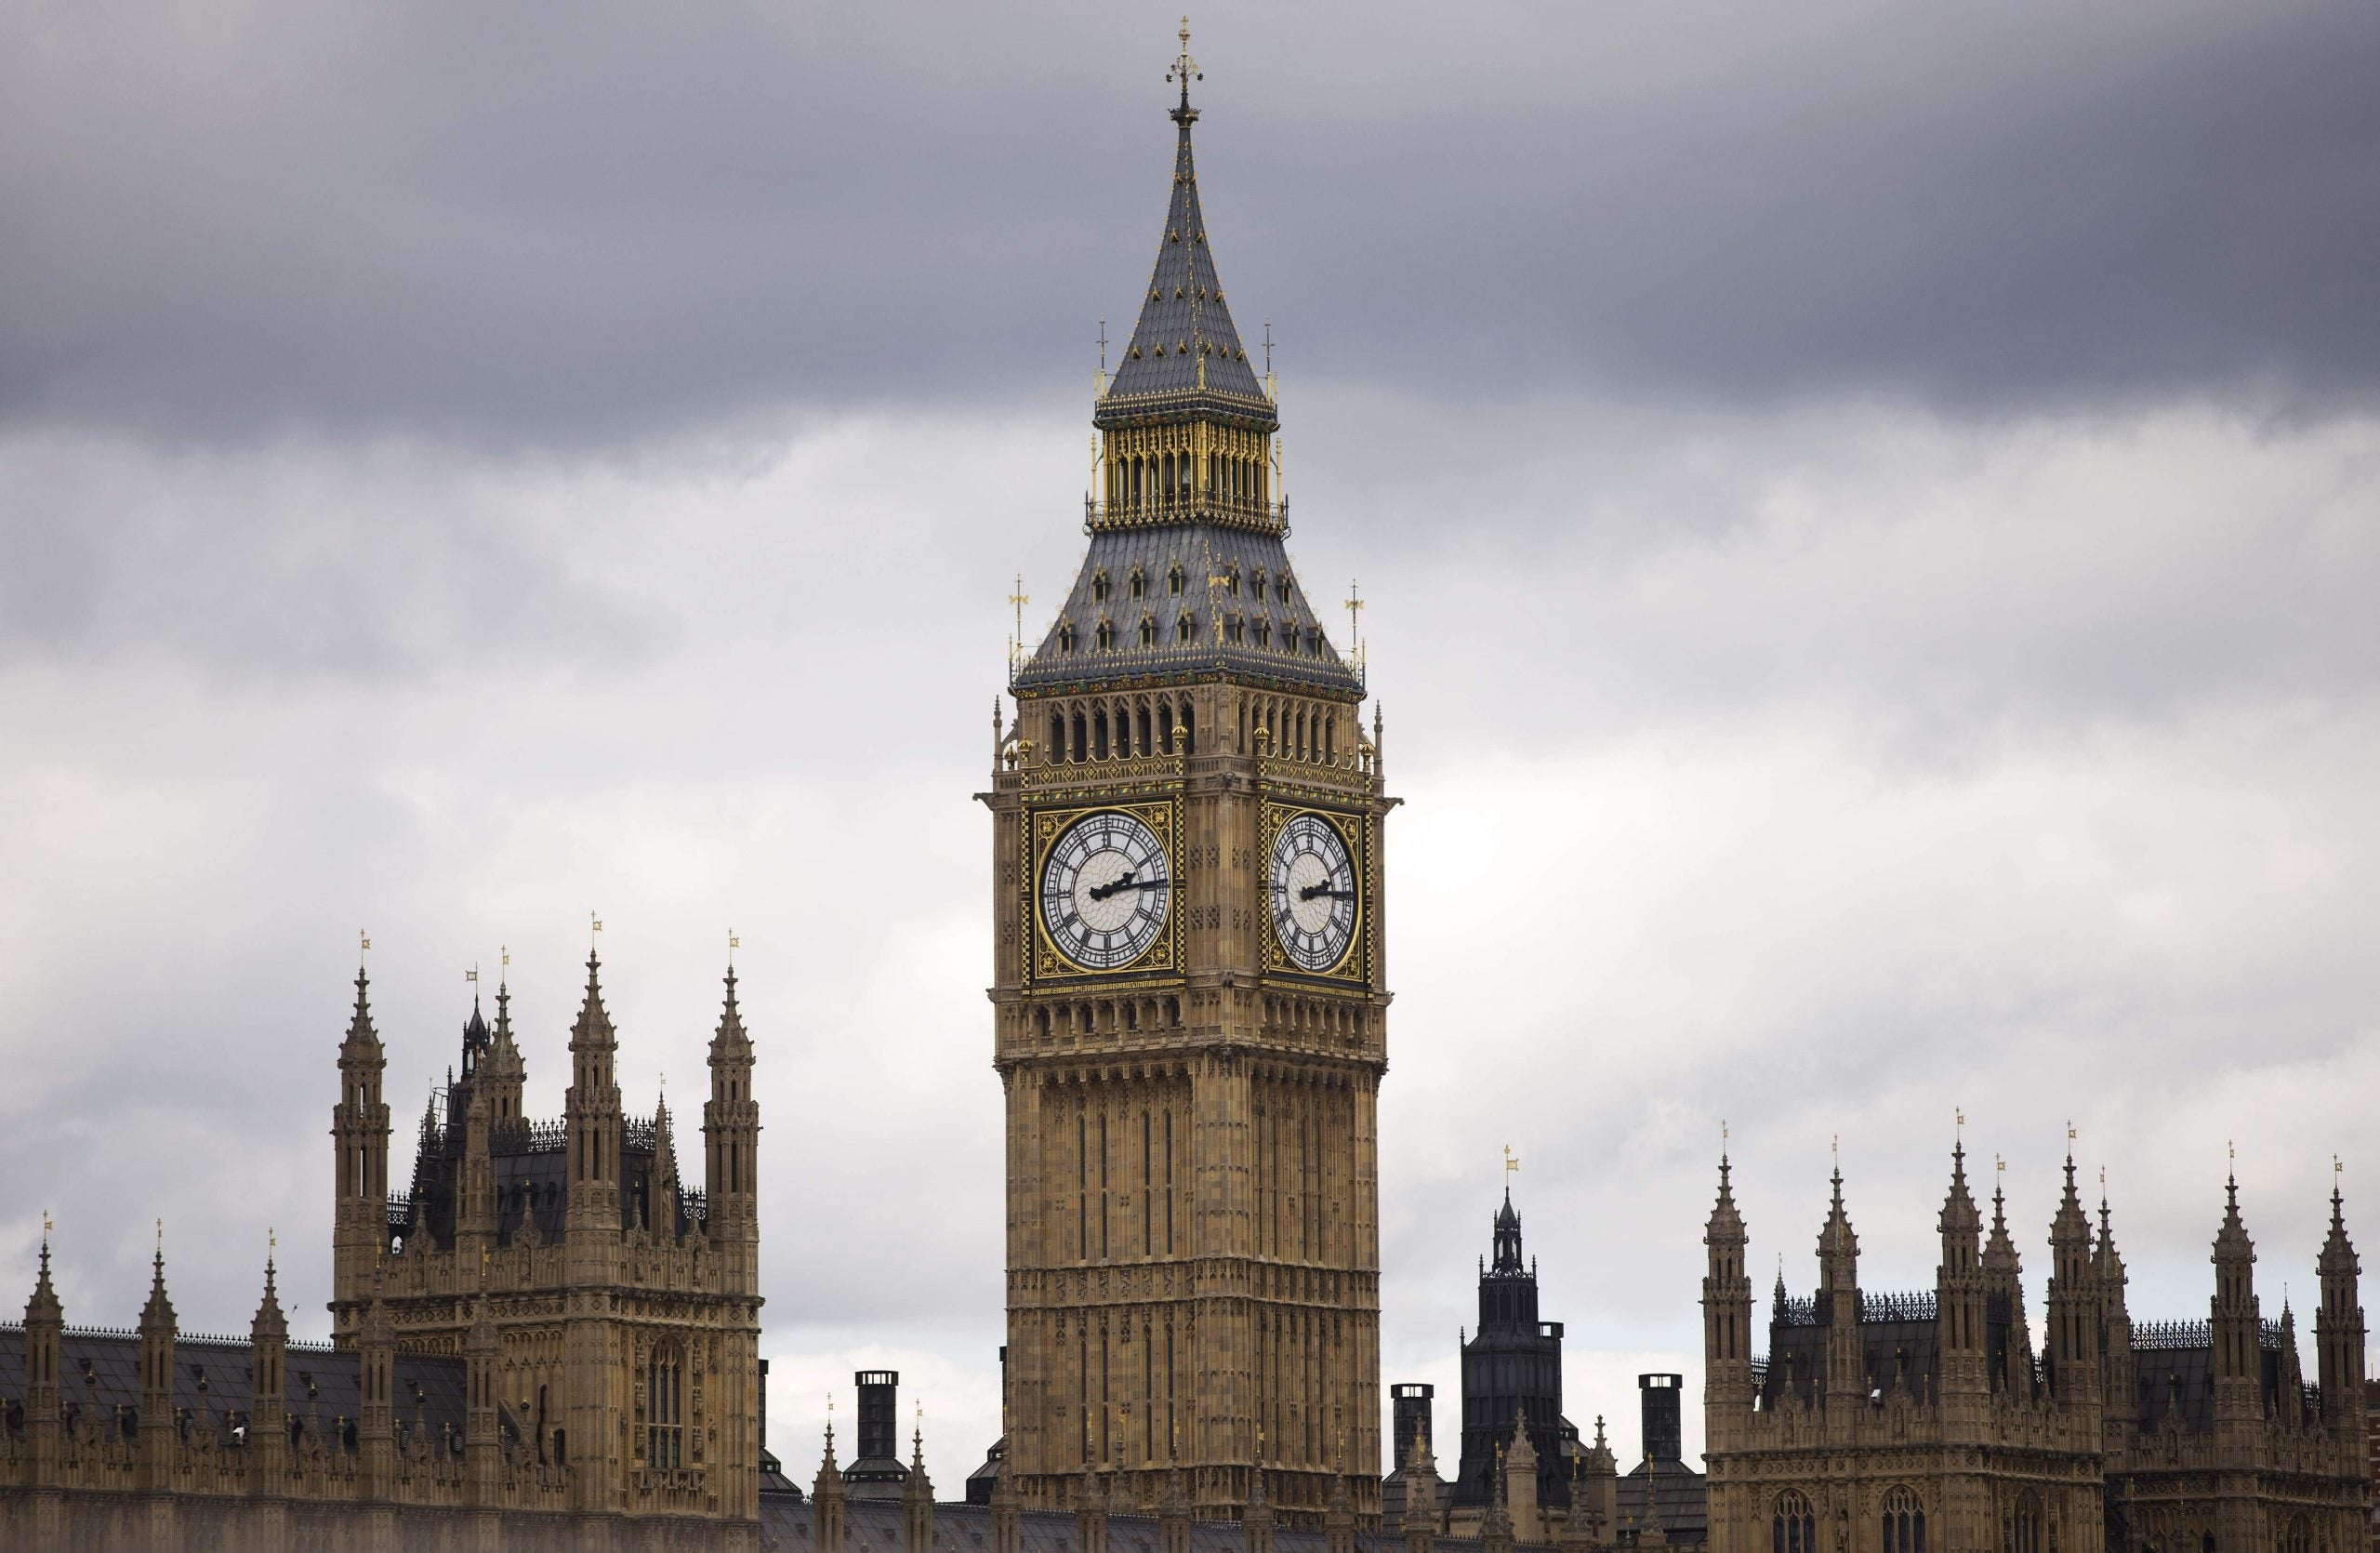 On the 750th anniversary of parliament, we need parties to take a risk